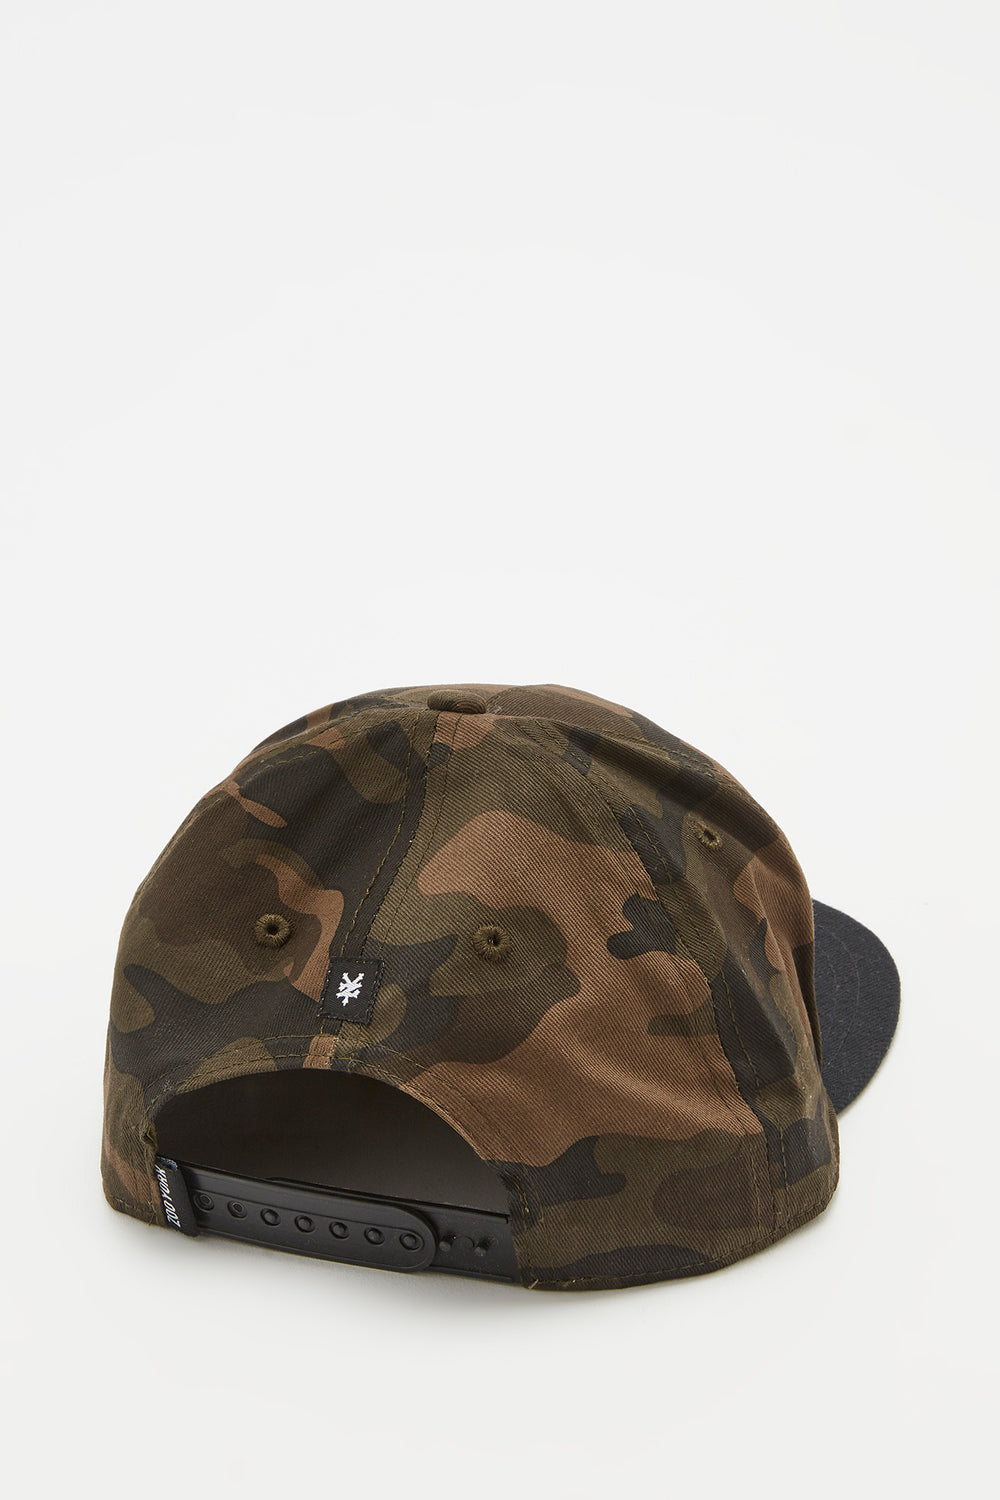 Zoo York Mens Camo Snapback Hat Camouflage